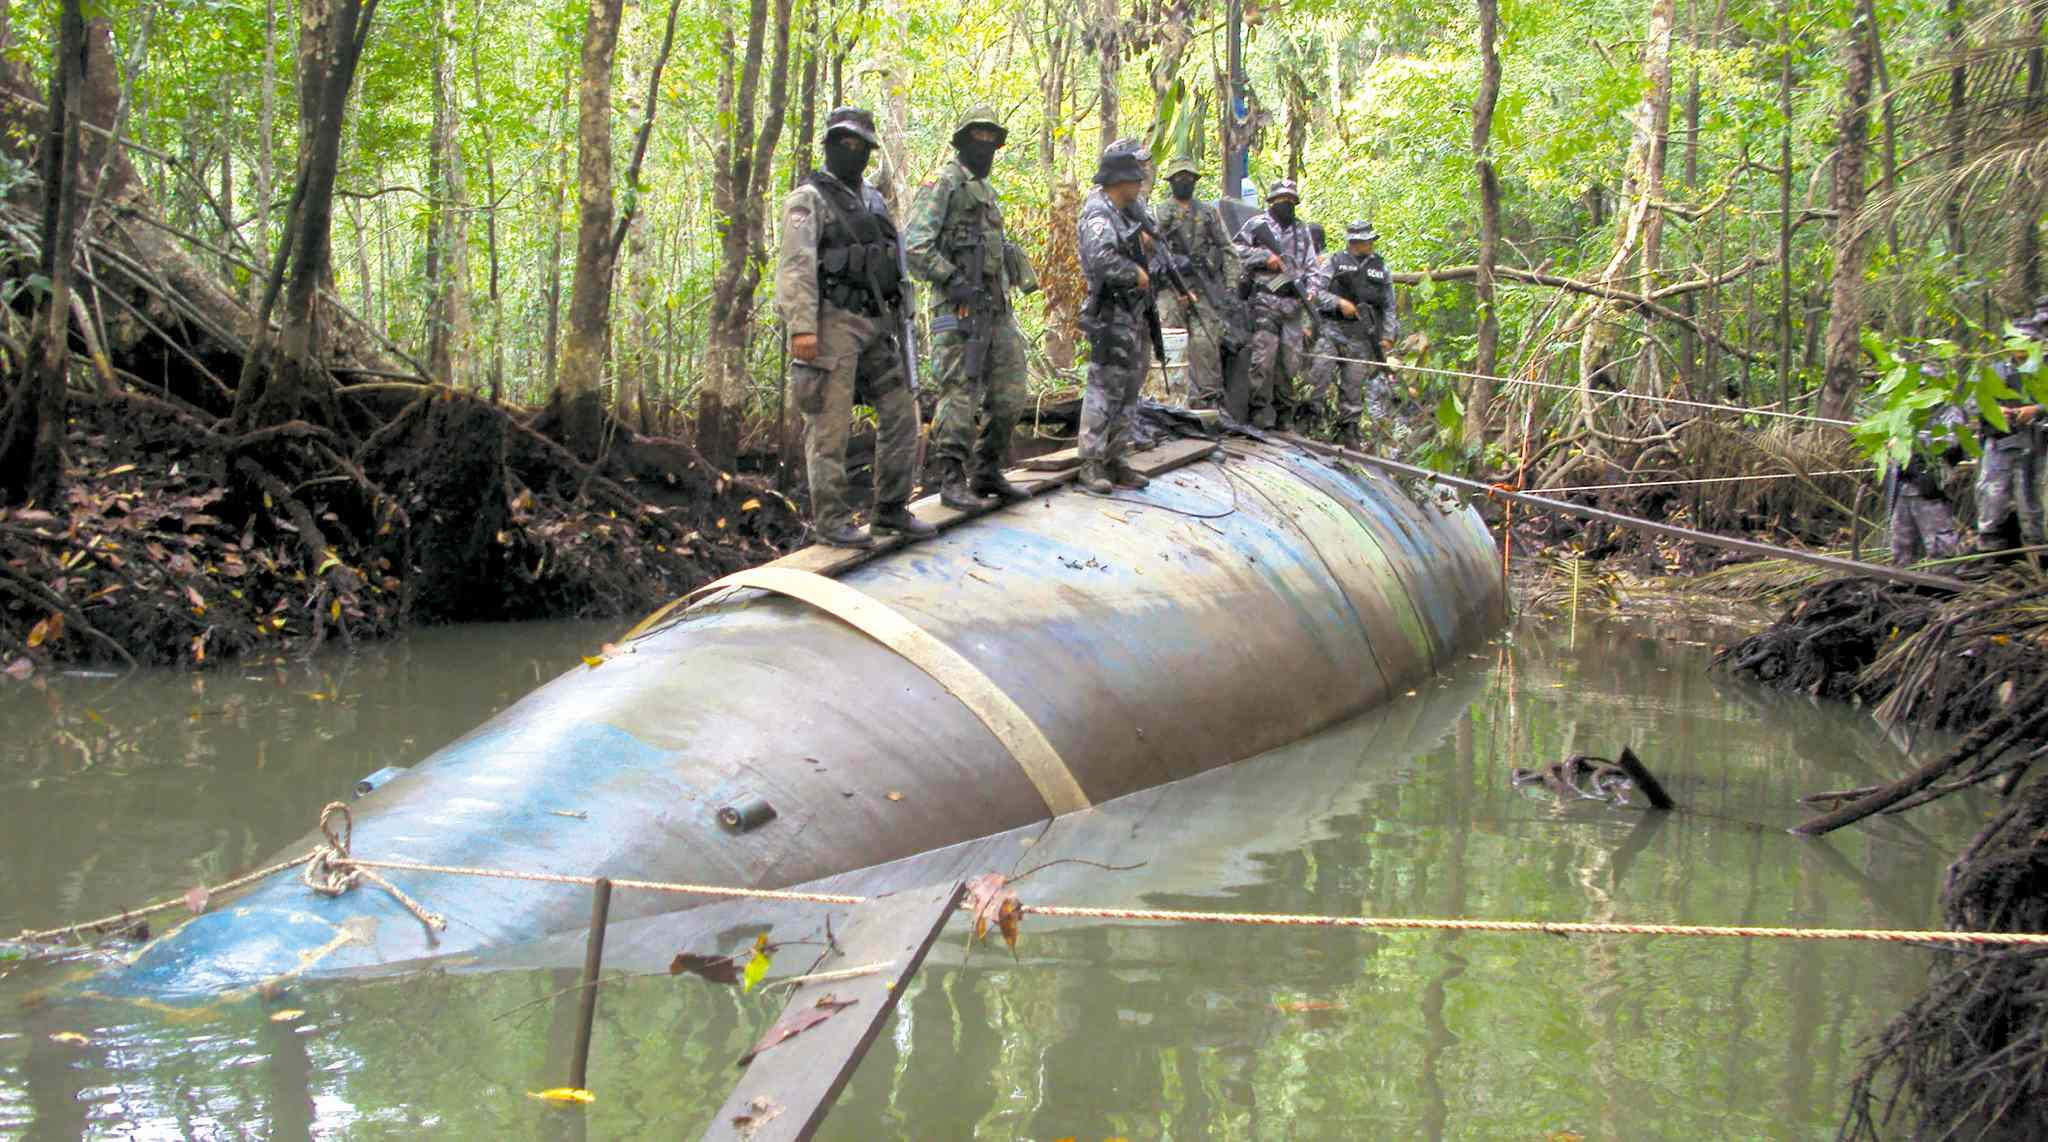 The Associated PressEcuadorean soldiers with a narcotics submarine seized before its maiden voyage. It was capable of transporting tons of cocaine.Ecuadorean soldiers with a narcotics submarine seized before its maiden voyage. It was capable of transporting tons of cocaine.Ecuadorean soldiers with a narcotics submarine seized before its maiden voyage. It was capable of transporting tons of cocaine.